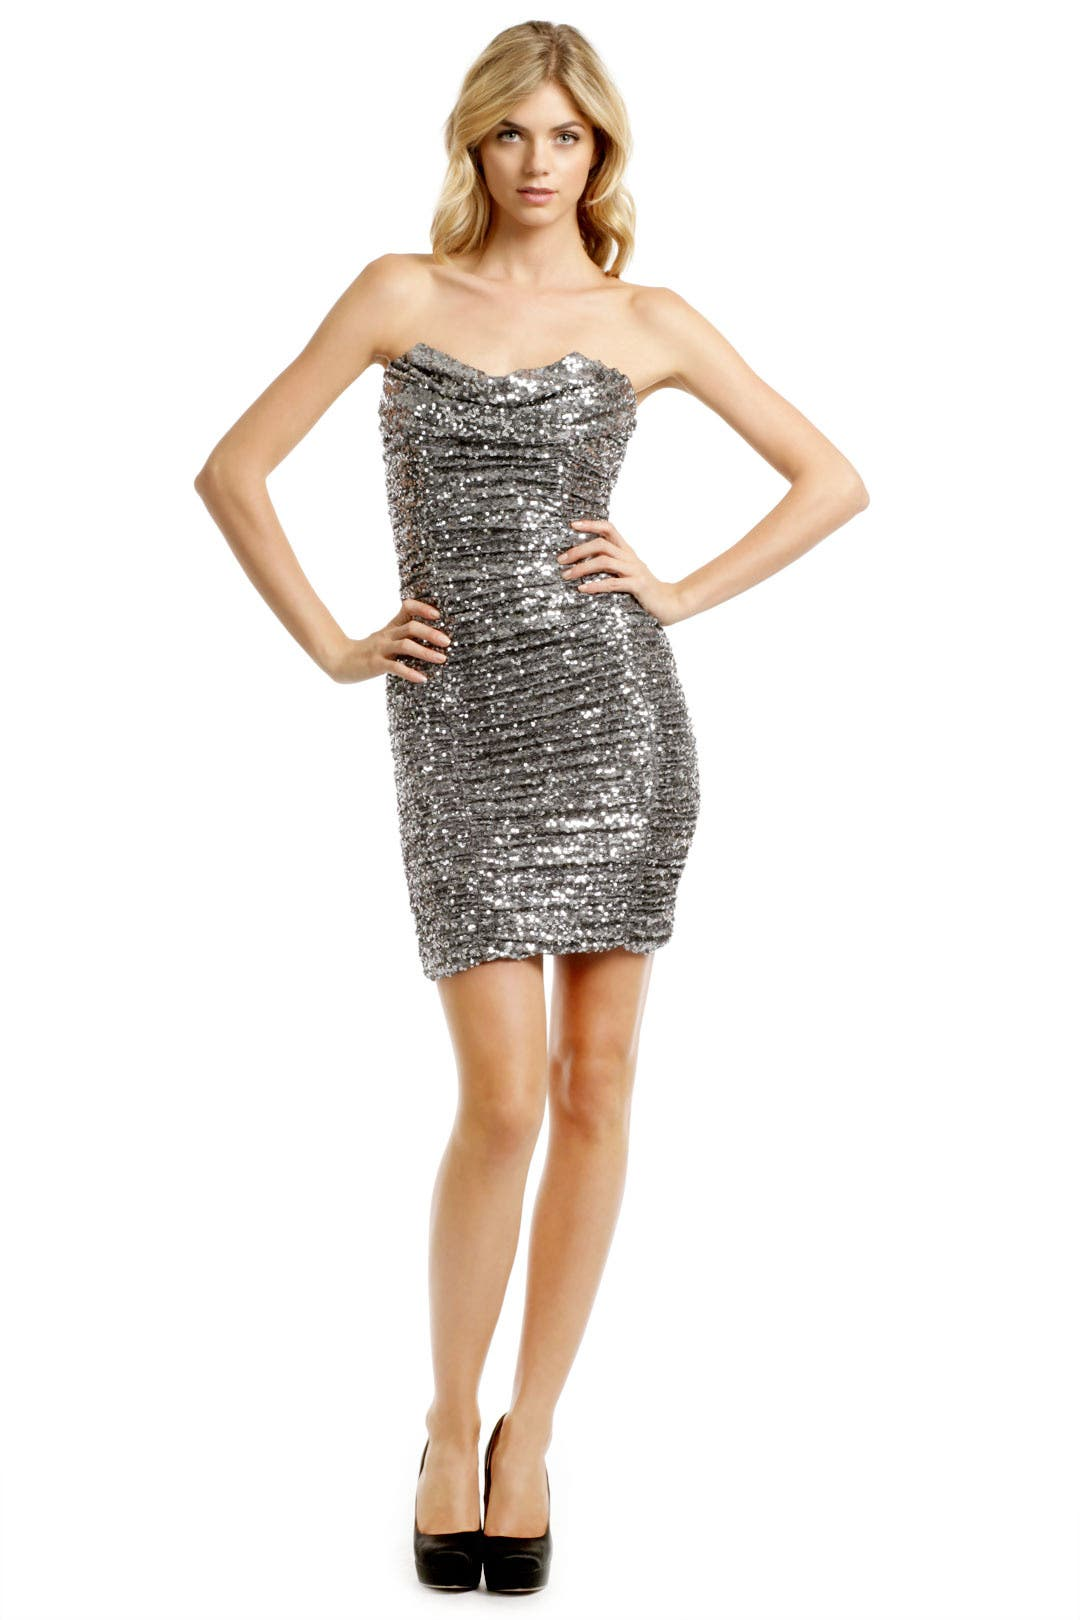 Silver Sequin Cocktail Dress by Badgley Mischka for $57 | Rent the ...